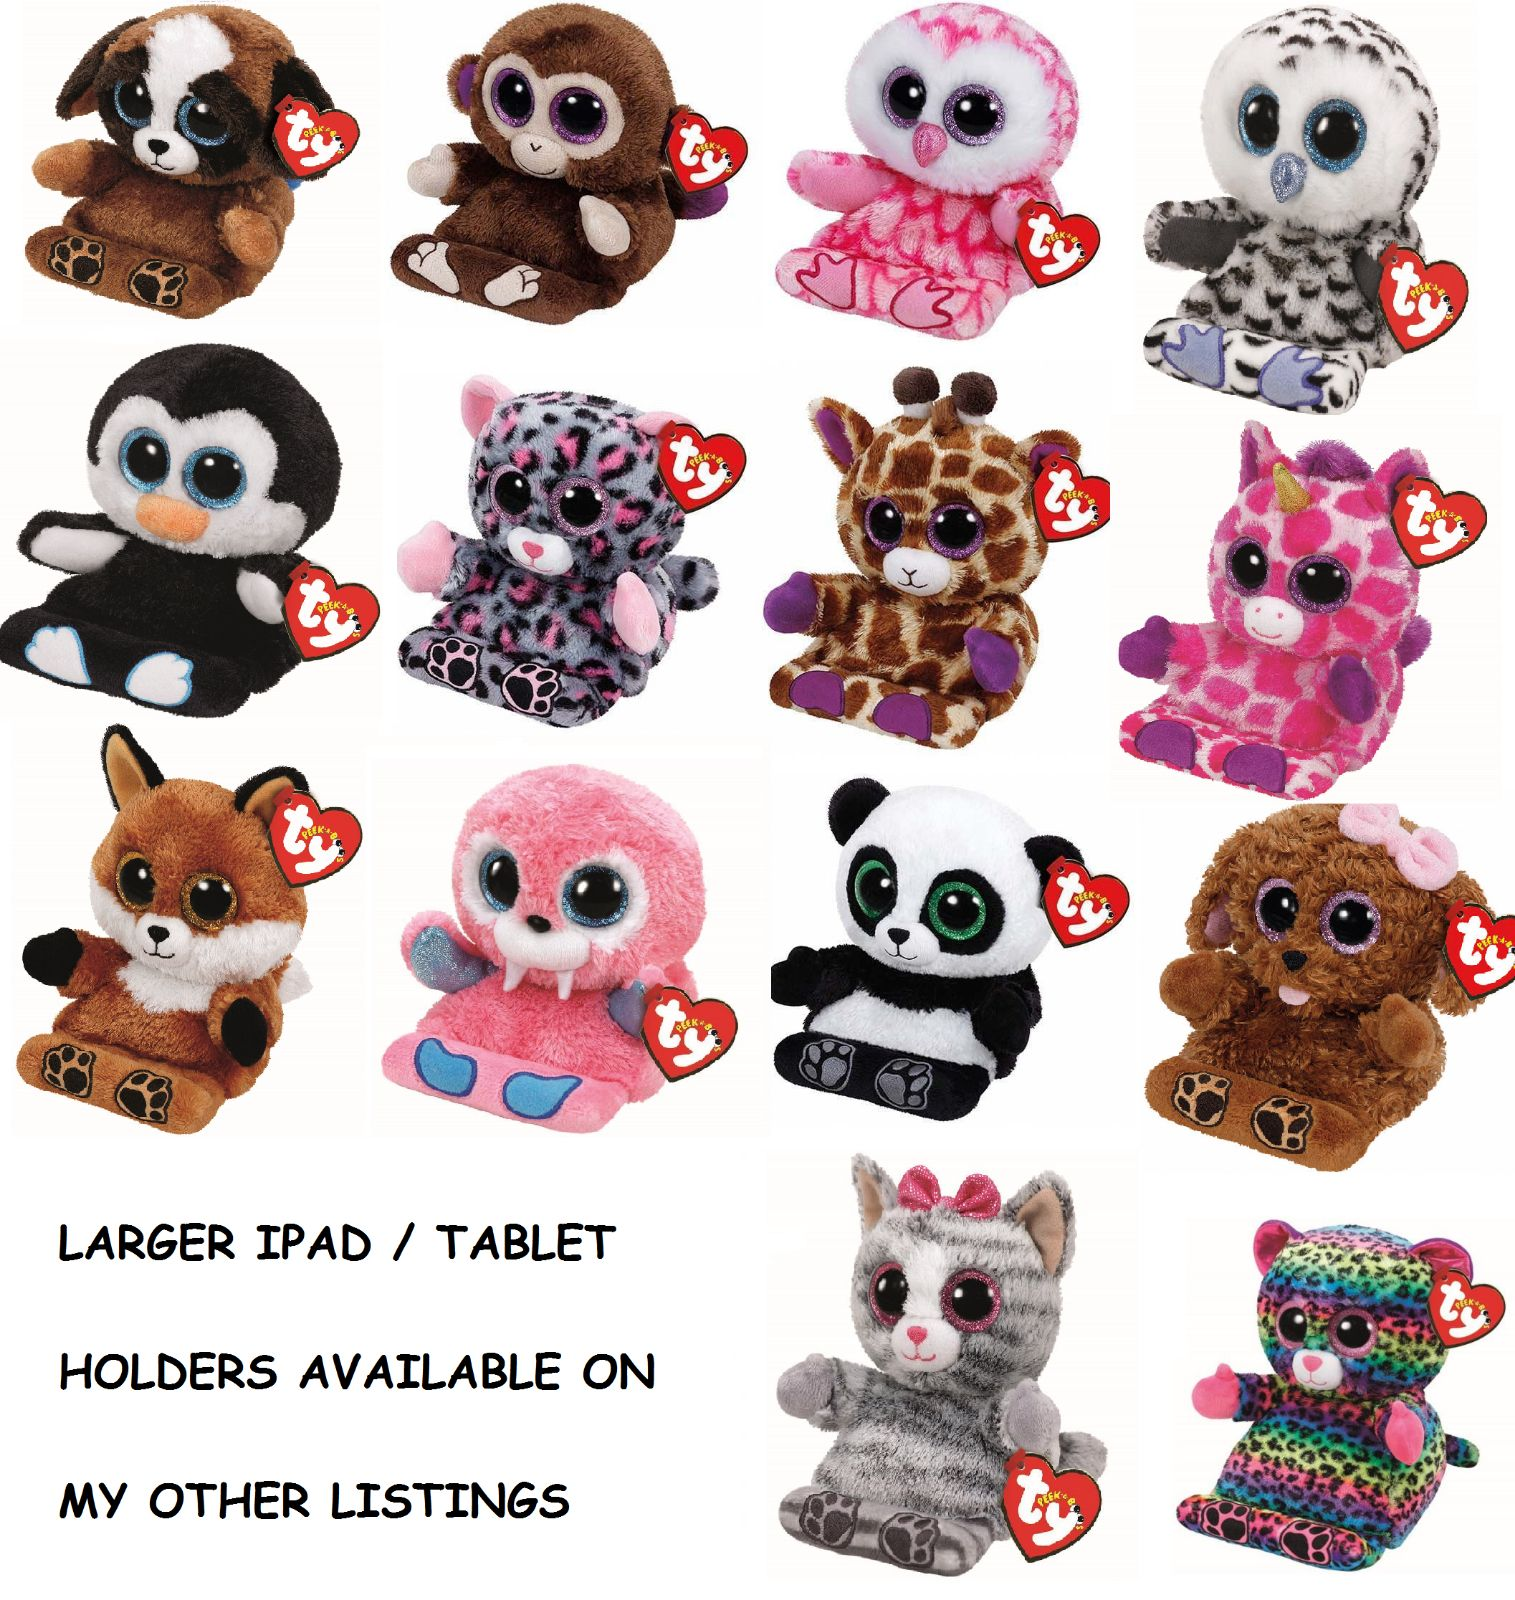 e5b2ce2d056 Current 1634  Ty - Peek-A-Boo Soft Plush Toy Mobile Phone - Tablet Holder -  2 Sizes Available -  BUY IT NOW ONLY   7.99 on eBay!